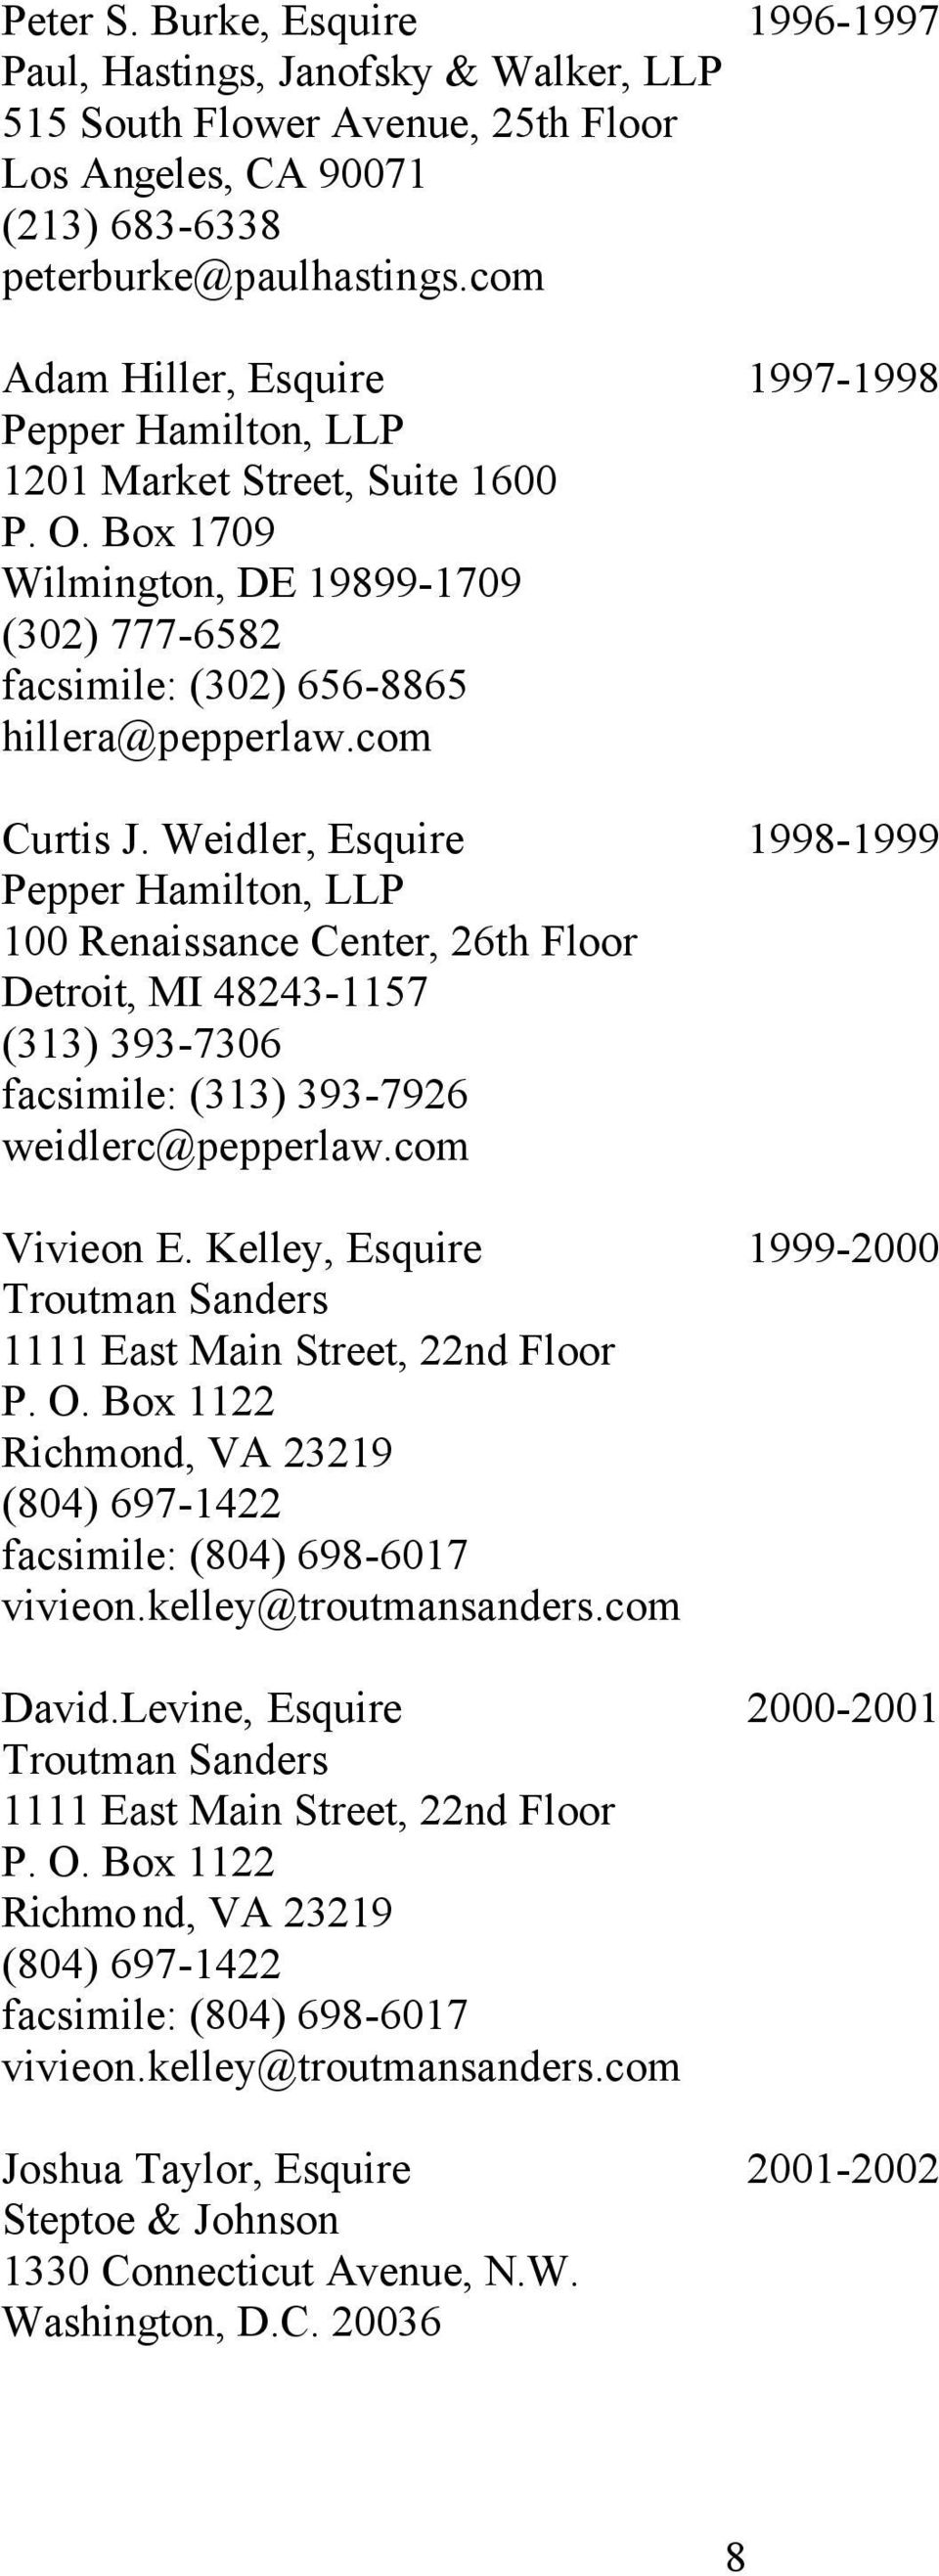 Weidler, Esquire 1998-1999 Pepper Hamilton, LLP 100 Renaissance Center, 26th Floor Detroit, MI 48243-1157 (313) 393-7306 facsimile: (313) 393-7926 weidlerc@pepperlaw.com Vivieon E.